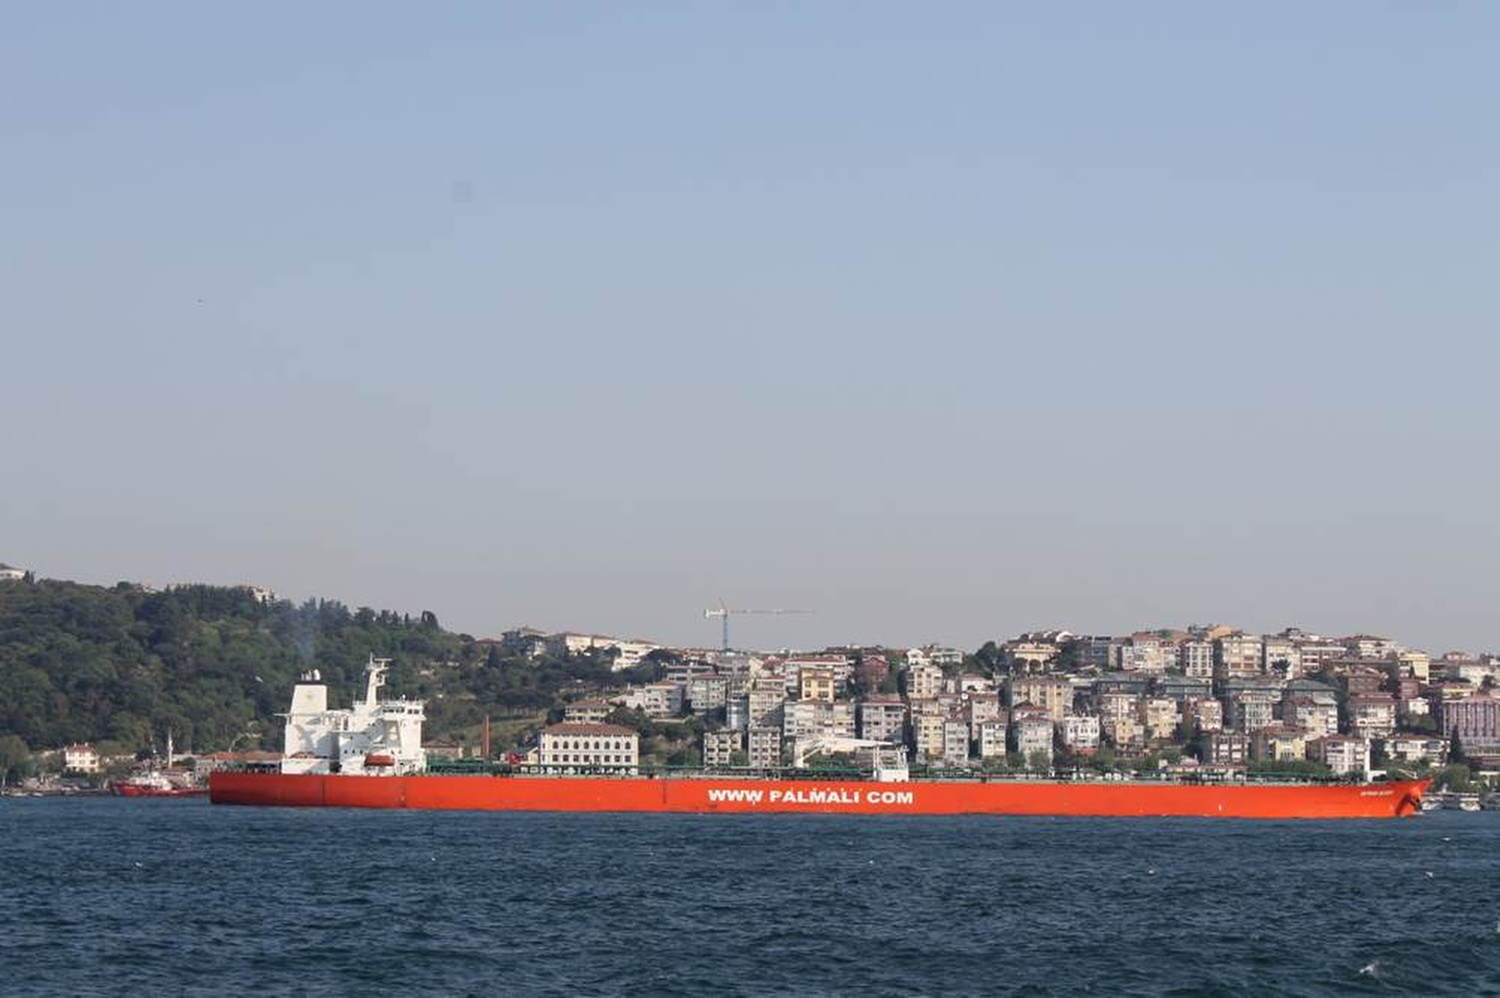 An oil tanker on the Bosphorous. The strait is extremely busy since it is the access point for ships that bring goods to Istanbul. Private boats are not allowed on the strait. I saw this ship as a symbol of Turkey's growth because the tanker brings oil, a key resource in a rapidly expanding economy. Phillip Dube '16/Bates College.